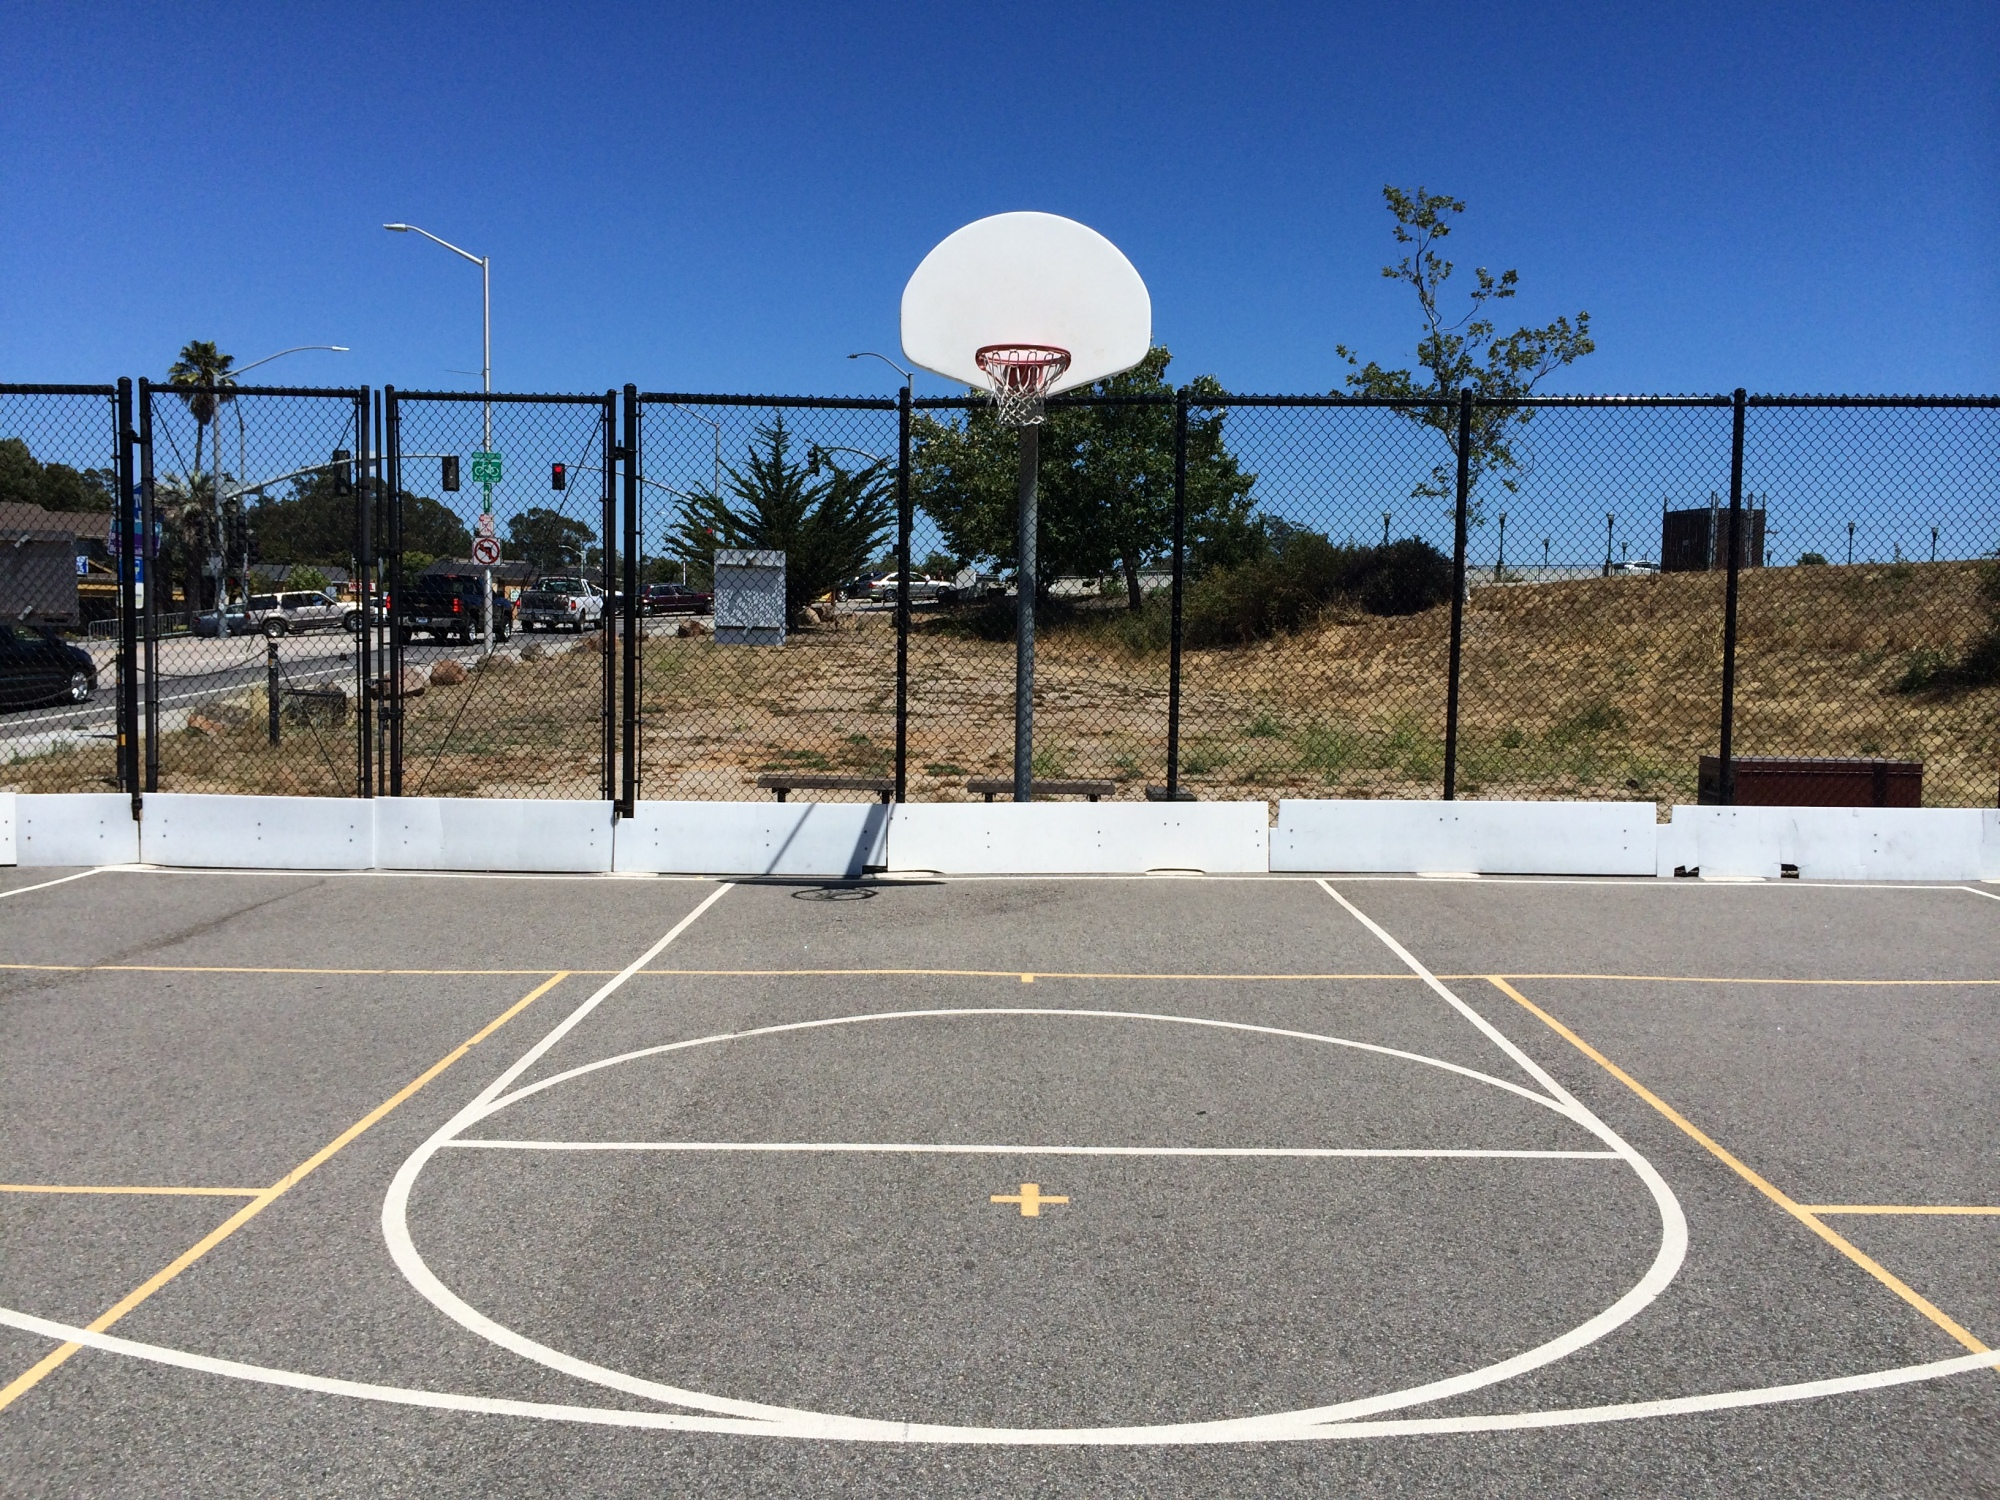 santa cruz basketball court